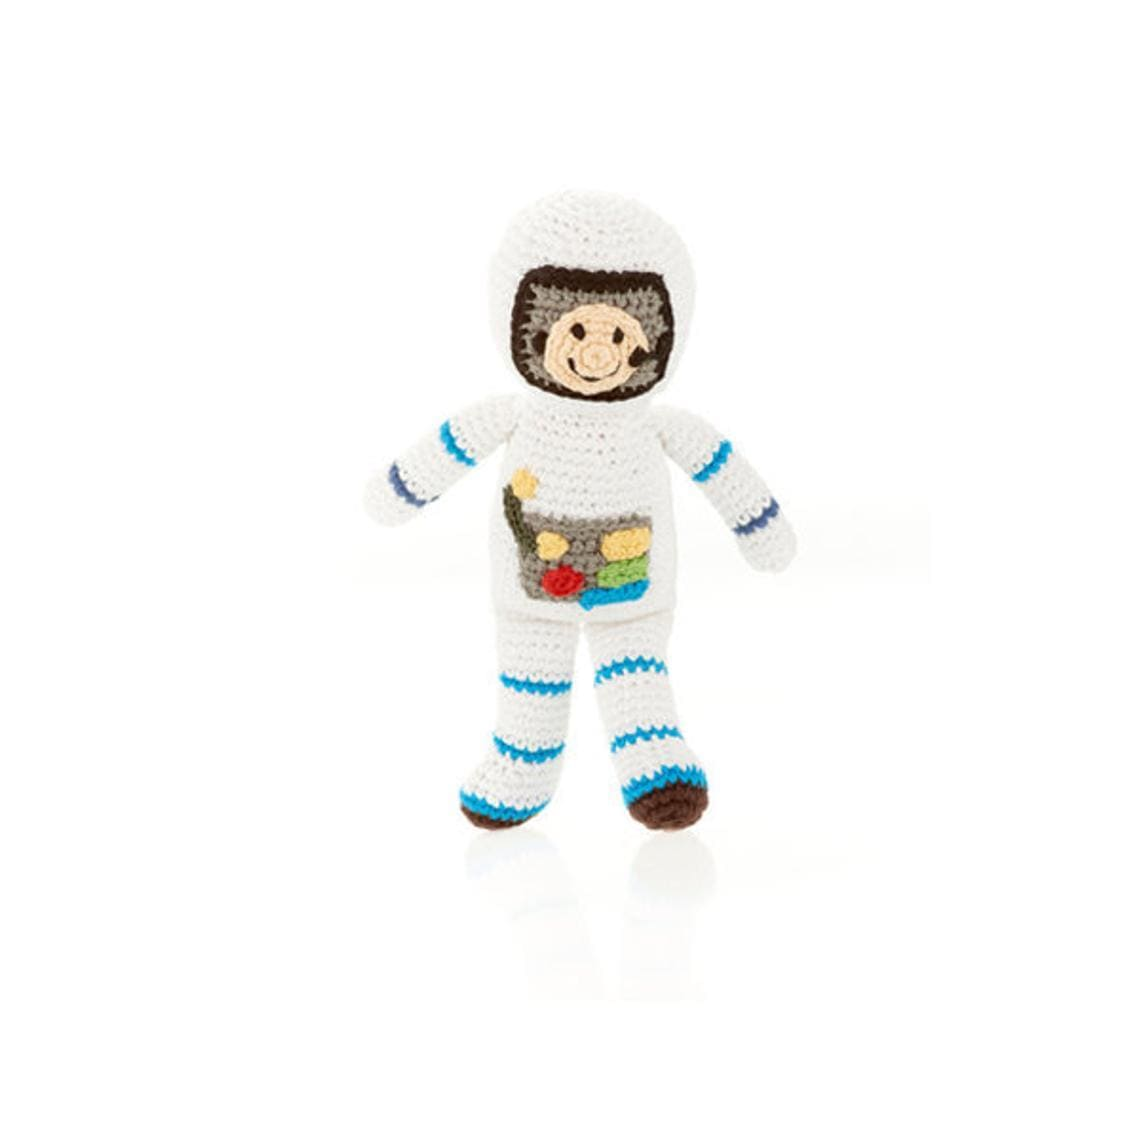 Pebble Spaceman Rattle